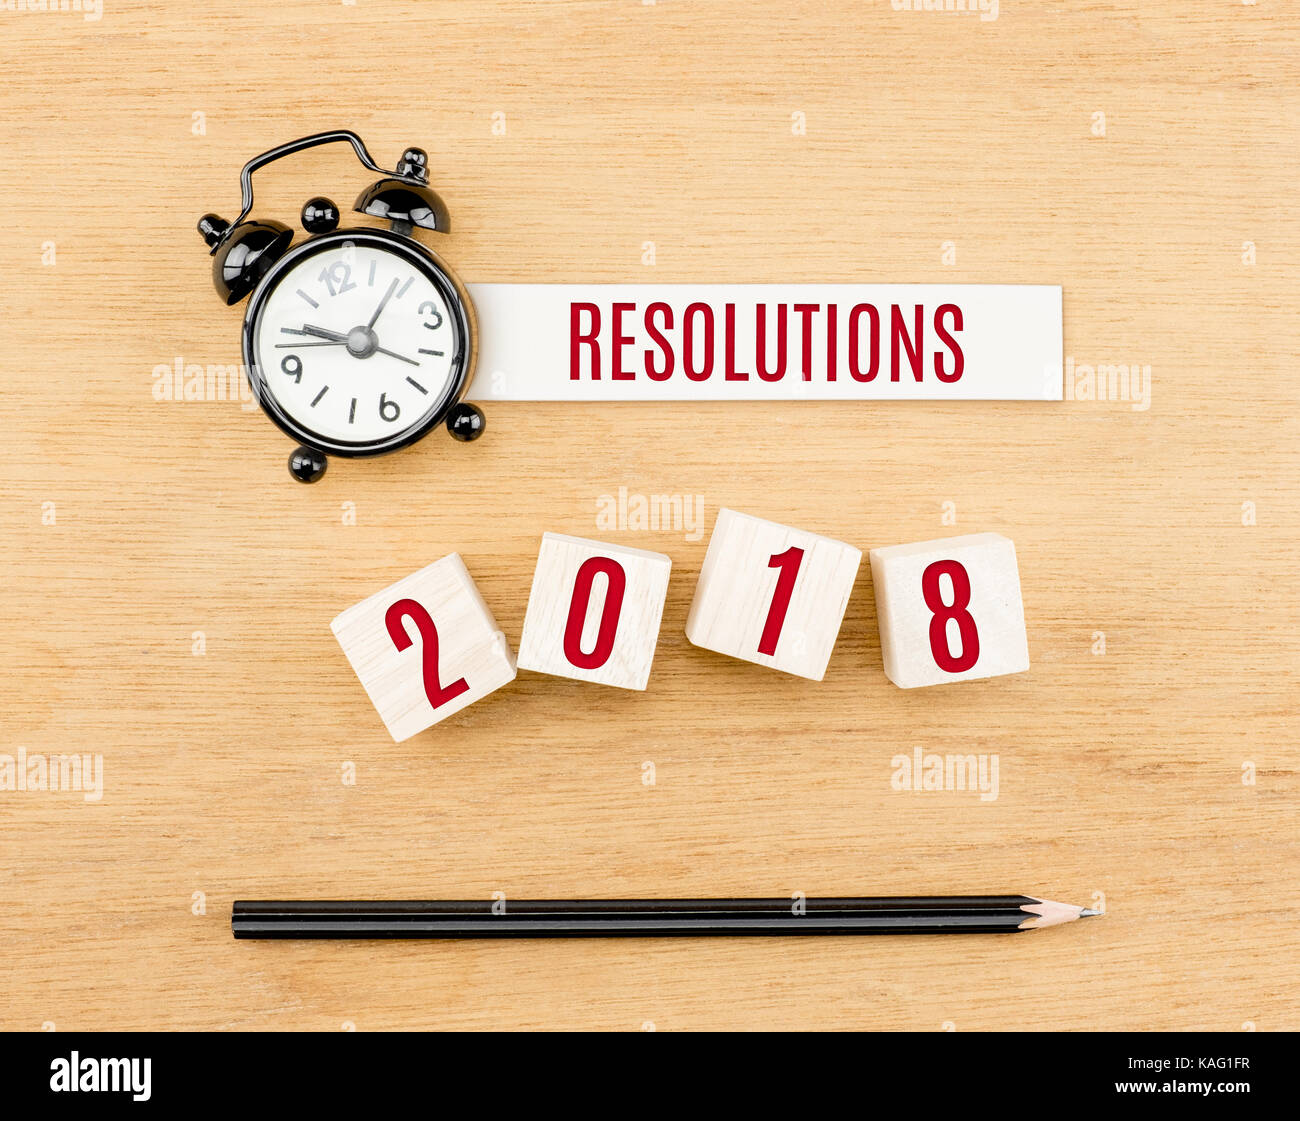 Resolutions New Year Red On Wood Cube With Pencil And Clock Top Stock Photo Royalty Free